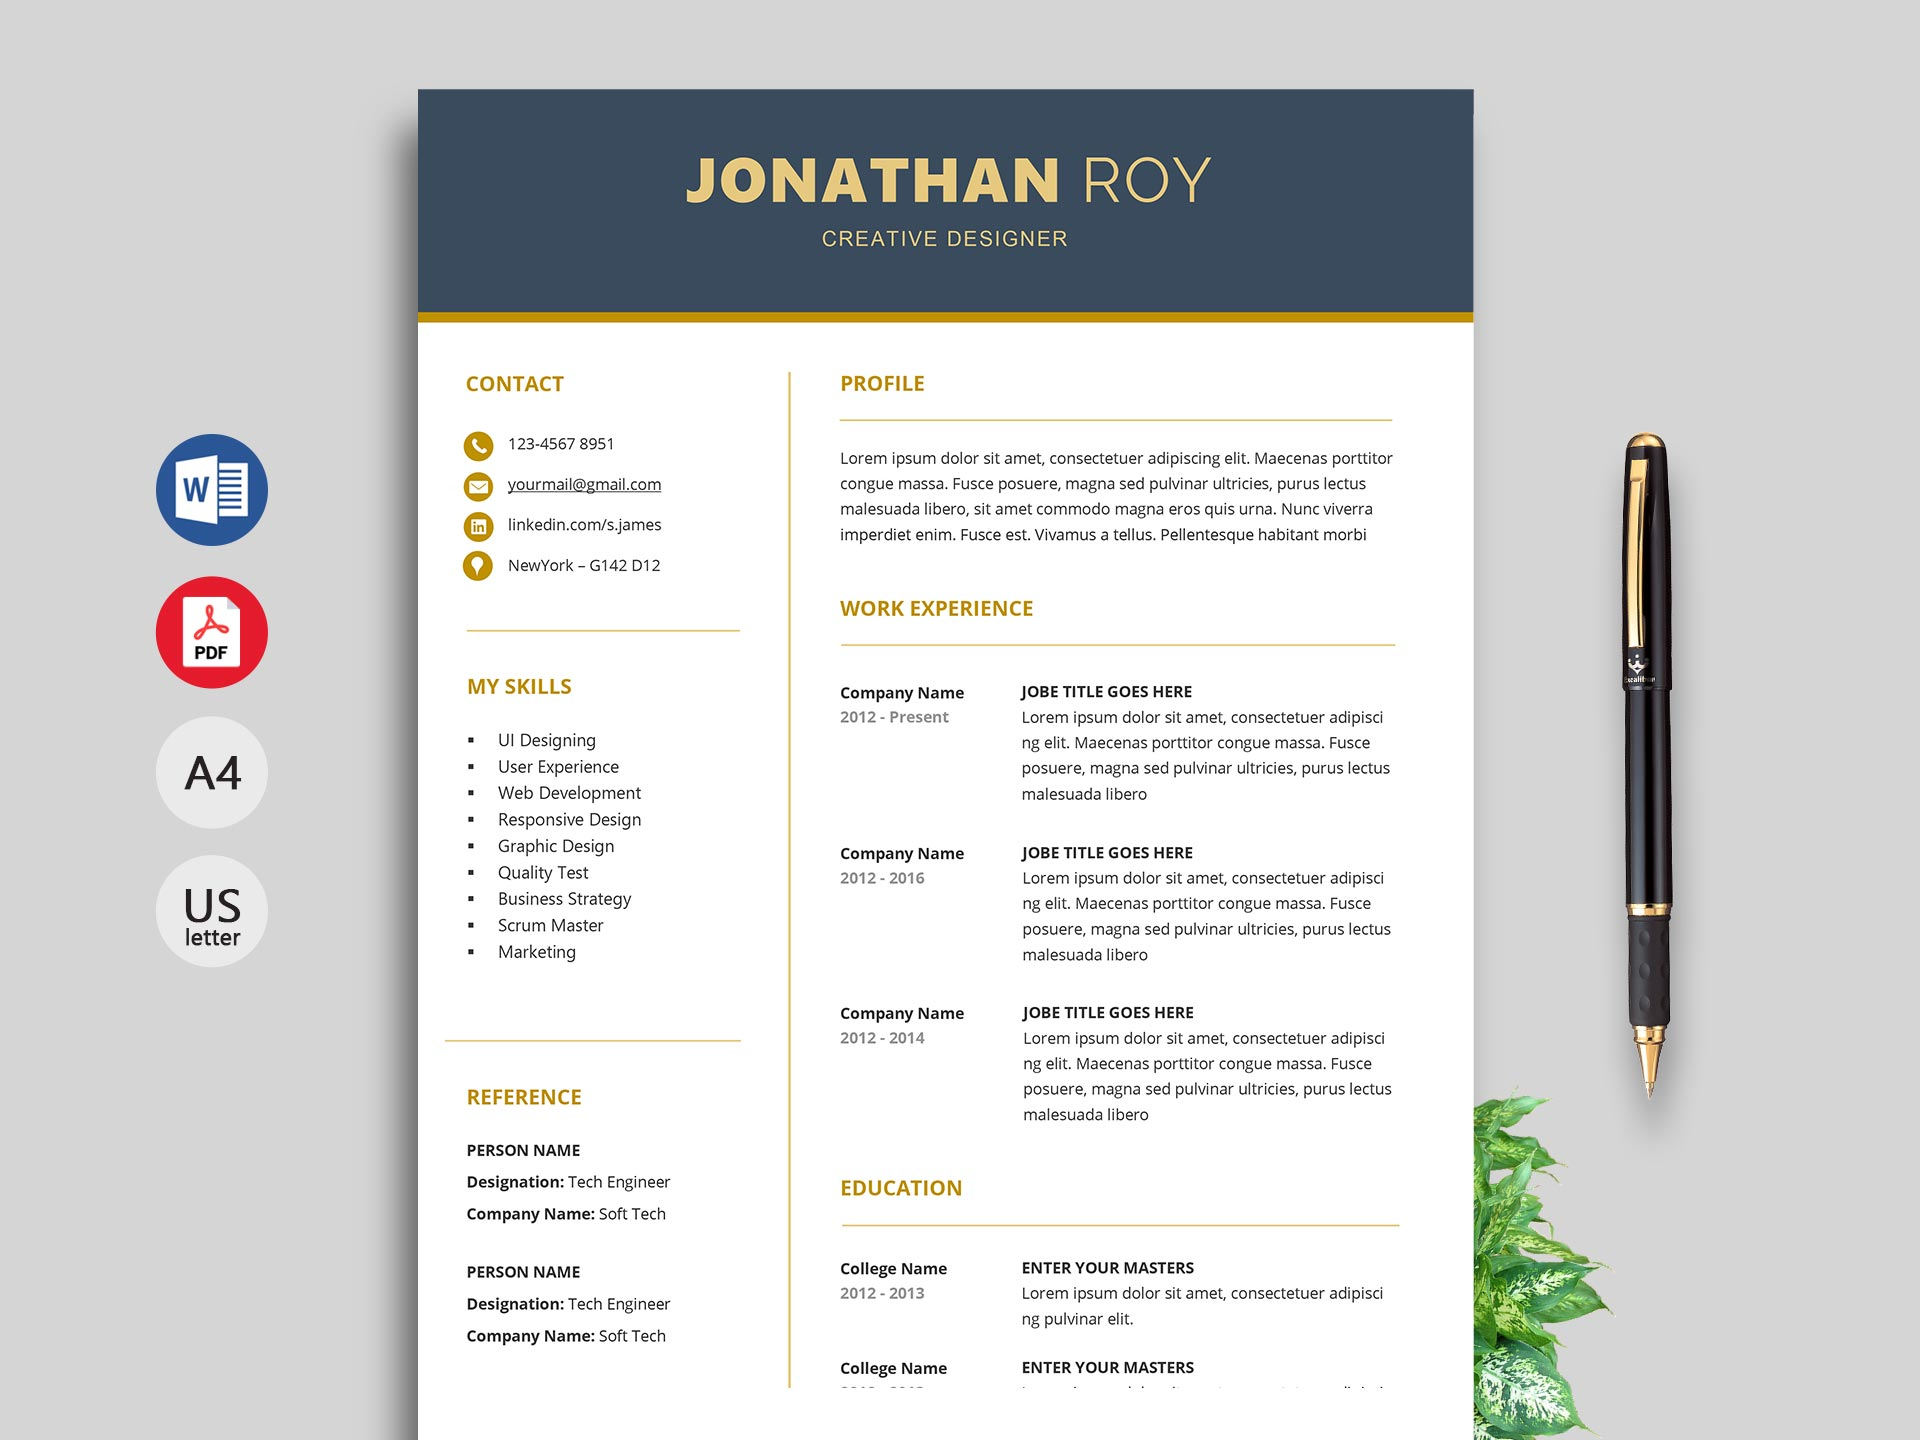 simple resume format cv template free easy gain hvac job description summary examples and Resume Easy Resume Format Free